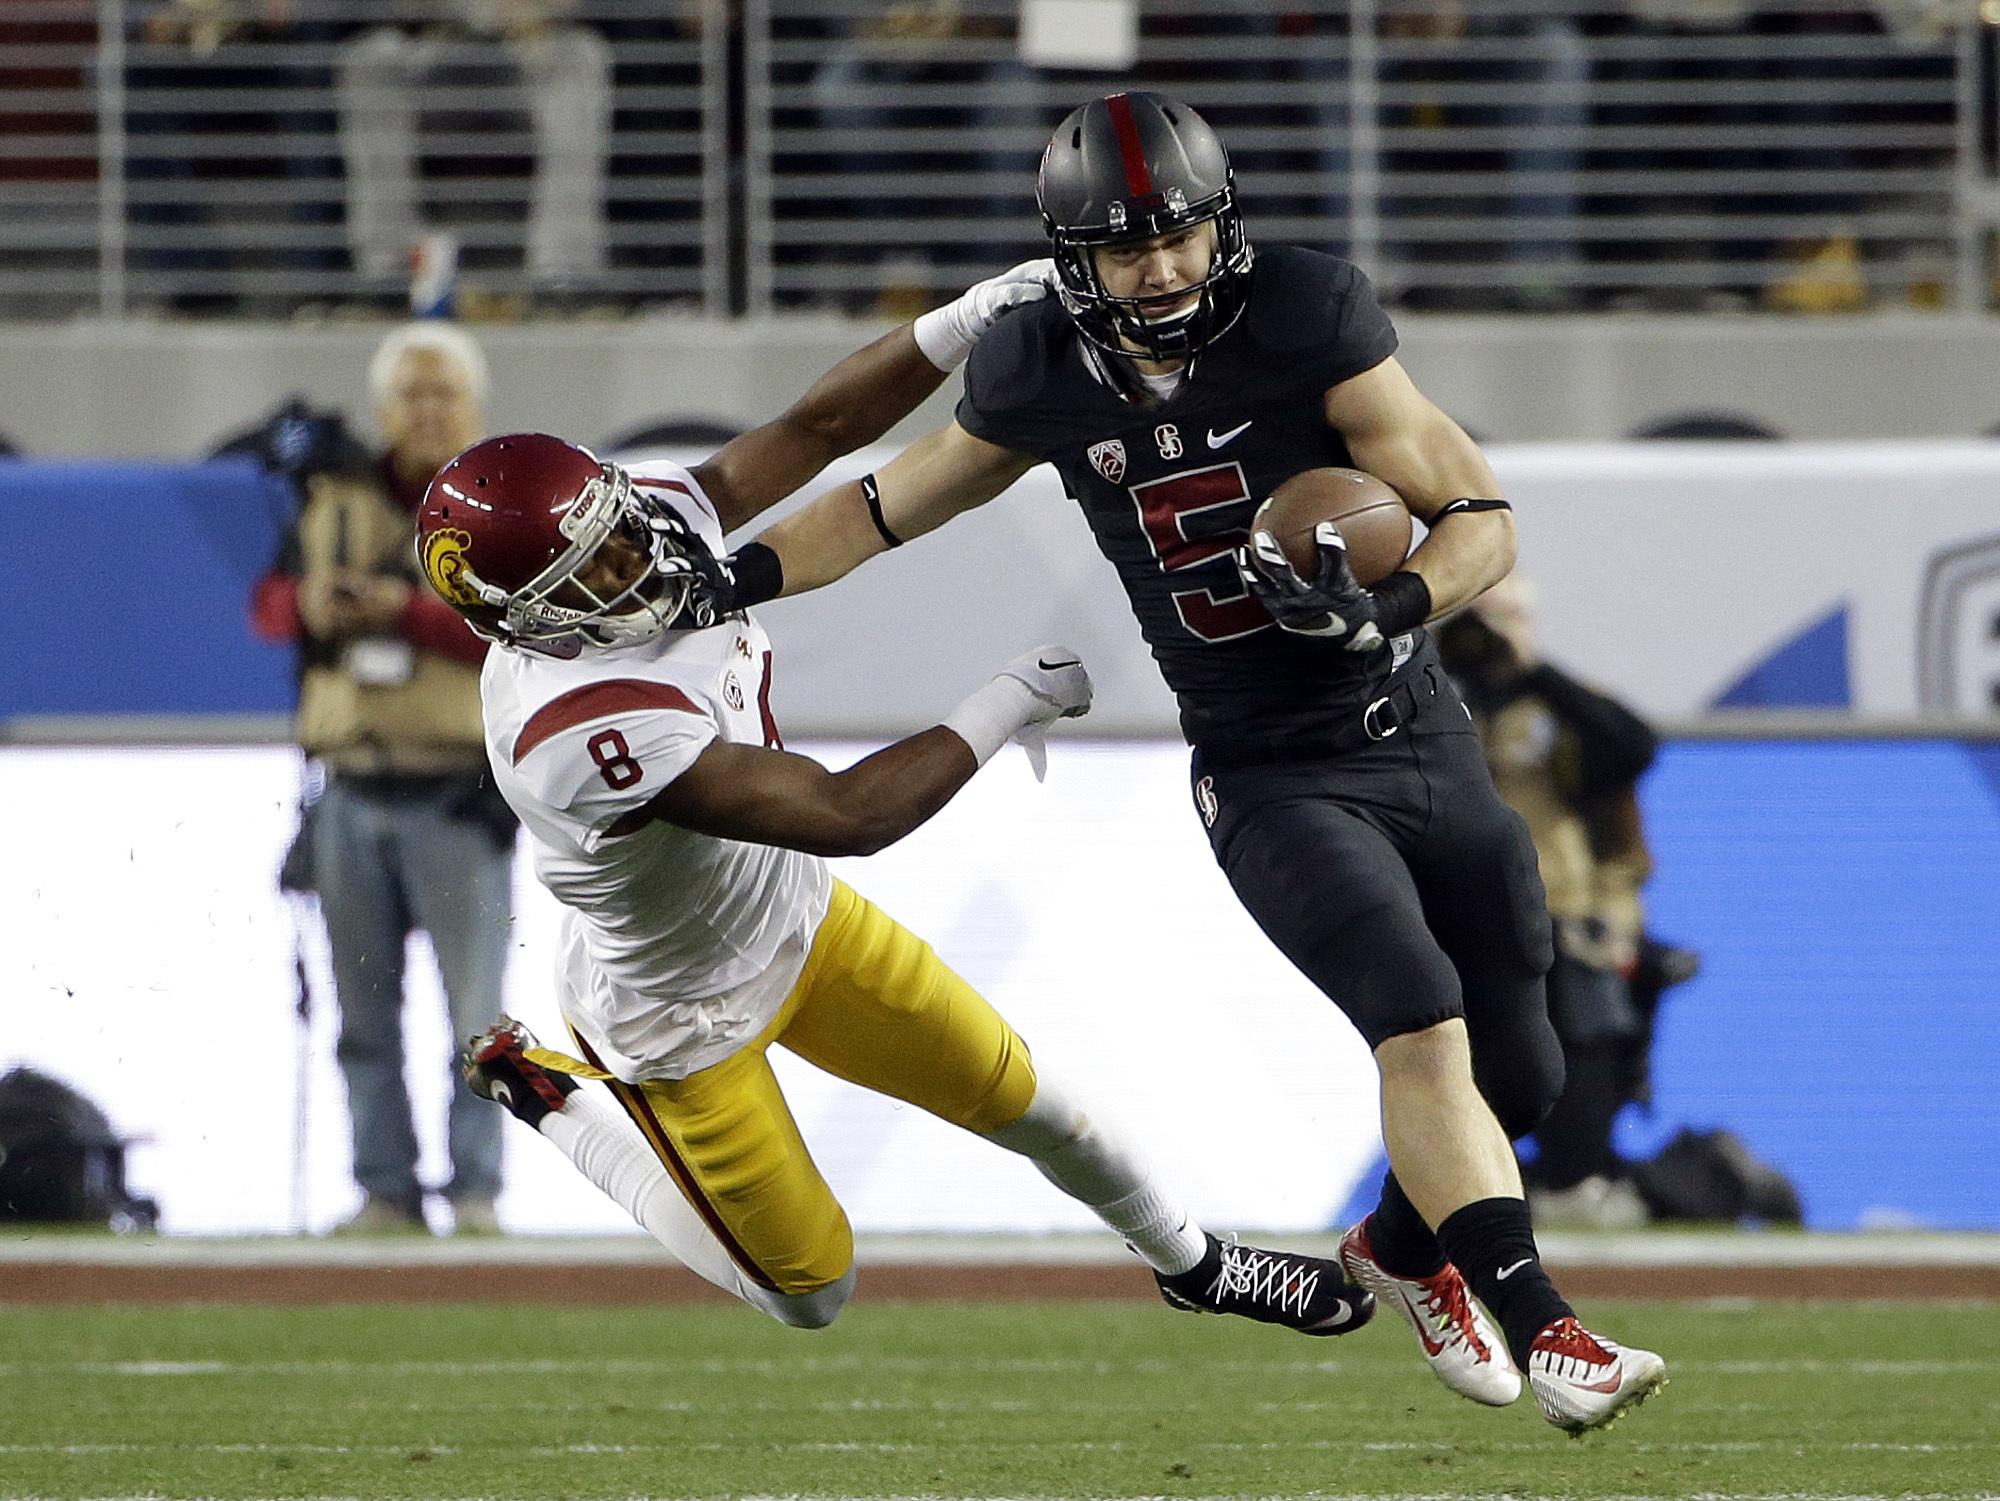 Usc_stanford_football